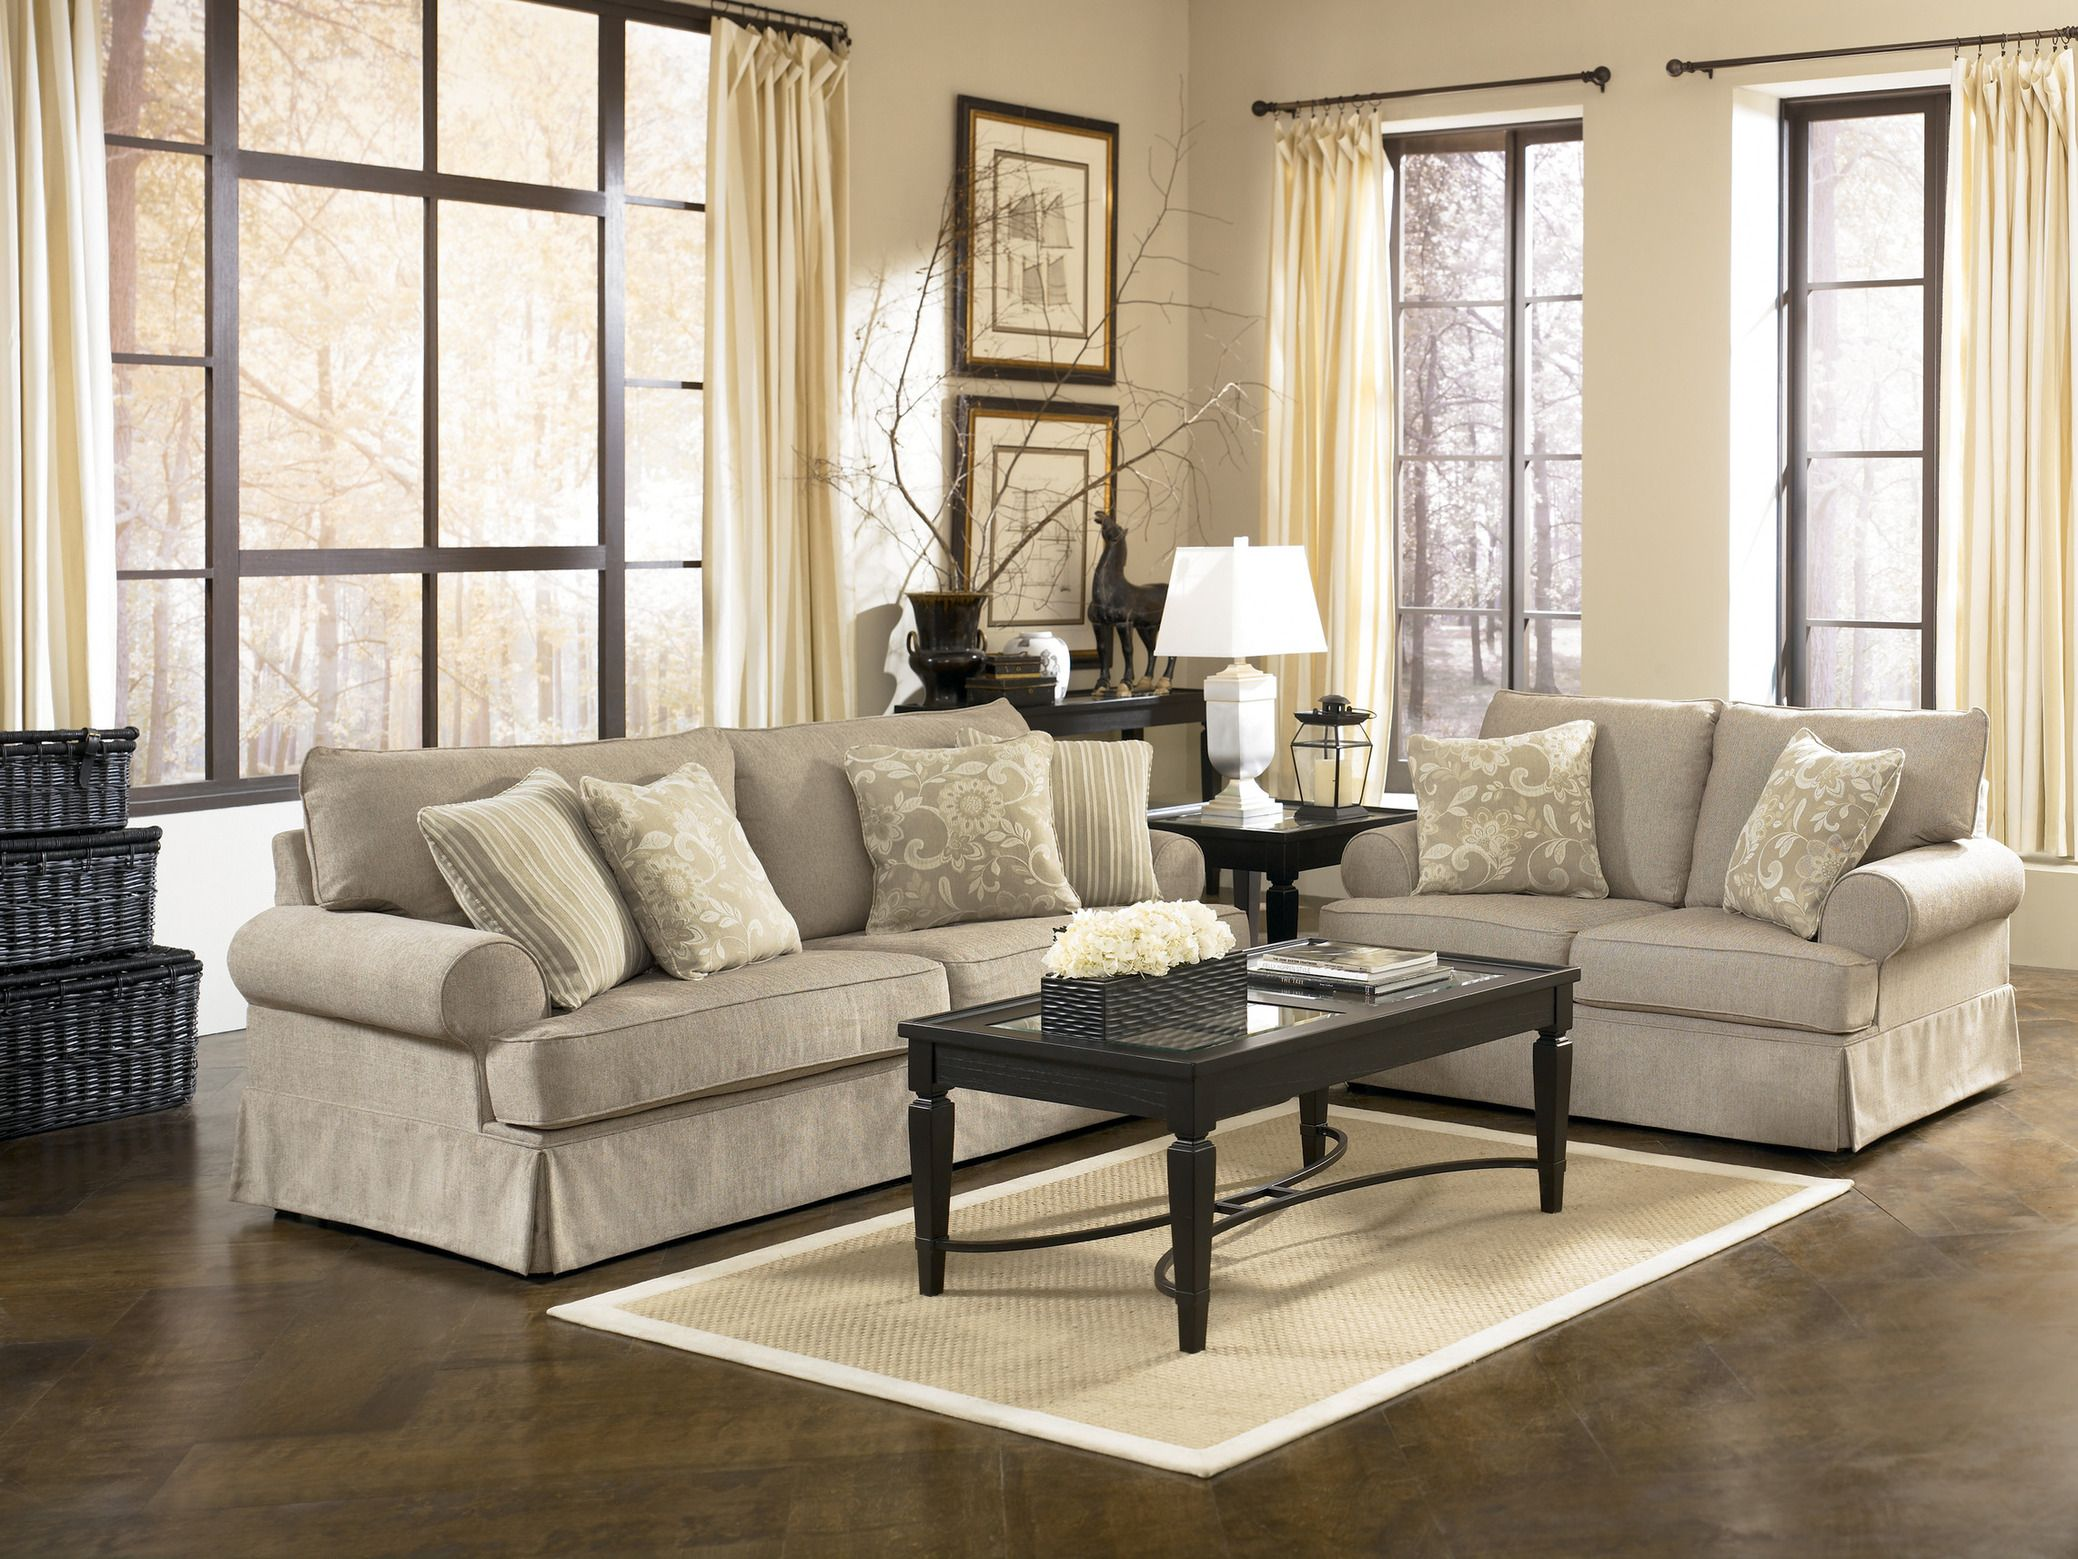 Beauteous Living Room Furniture Decoration With Grey Fabric F Sofa